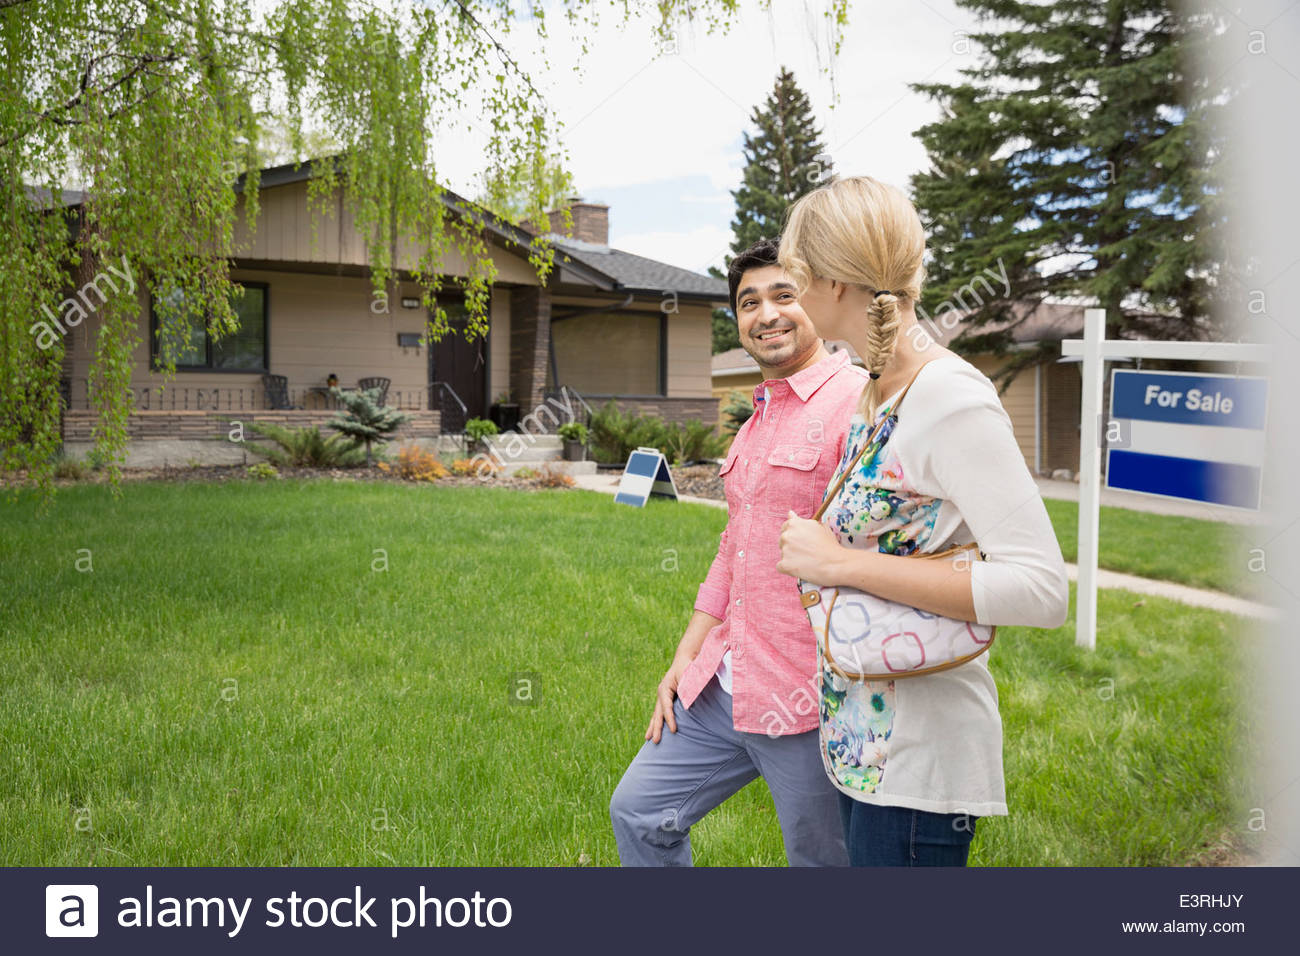 Couple walking outside house with For Sale sign - Stock Image